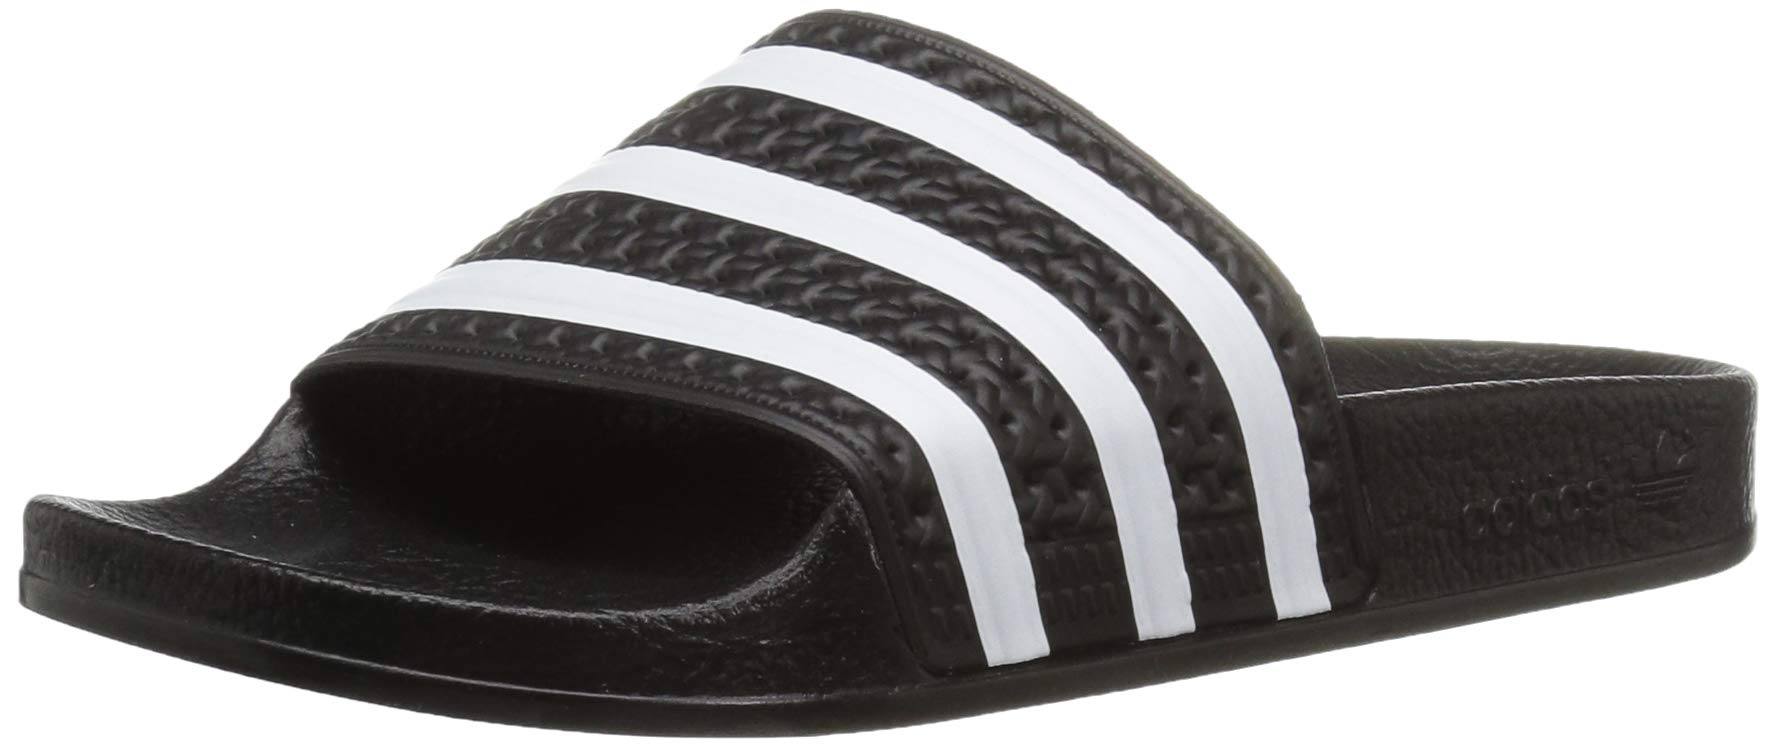 adidas Originals Unisex Adilette Sandal, White/Black, 6 M US Big Kid